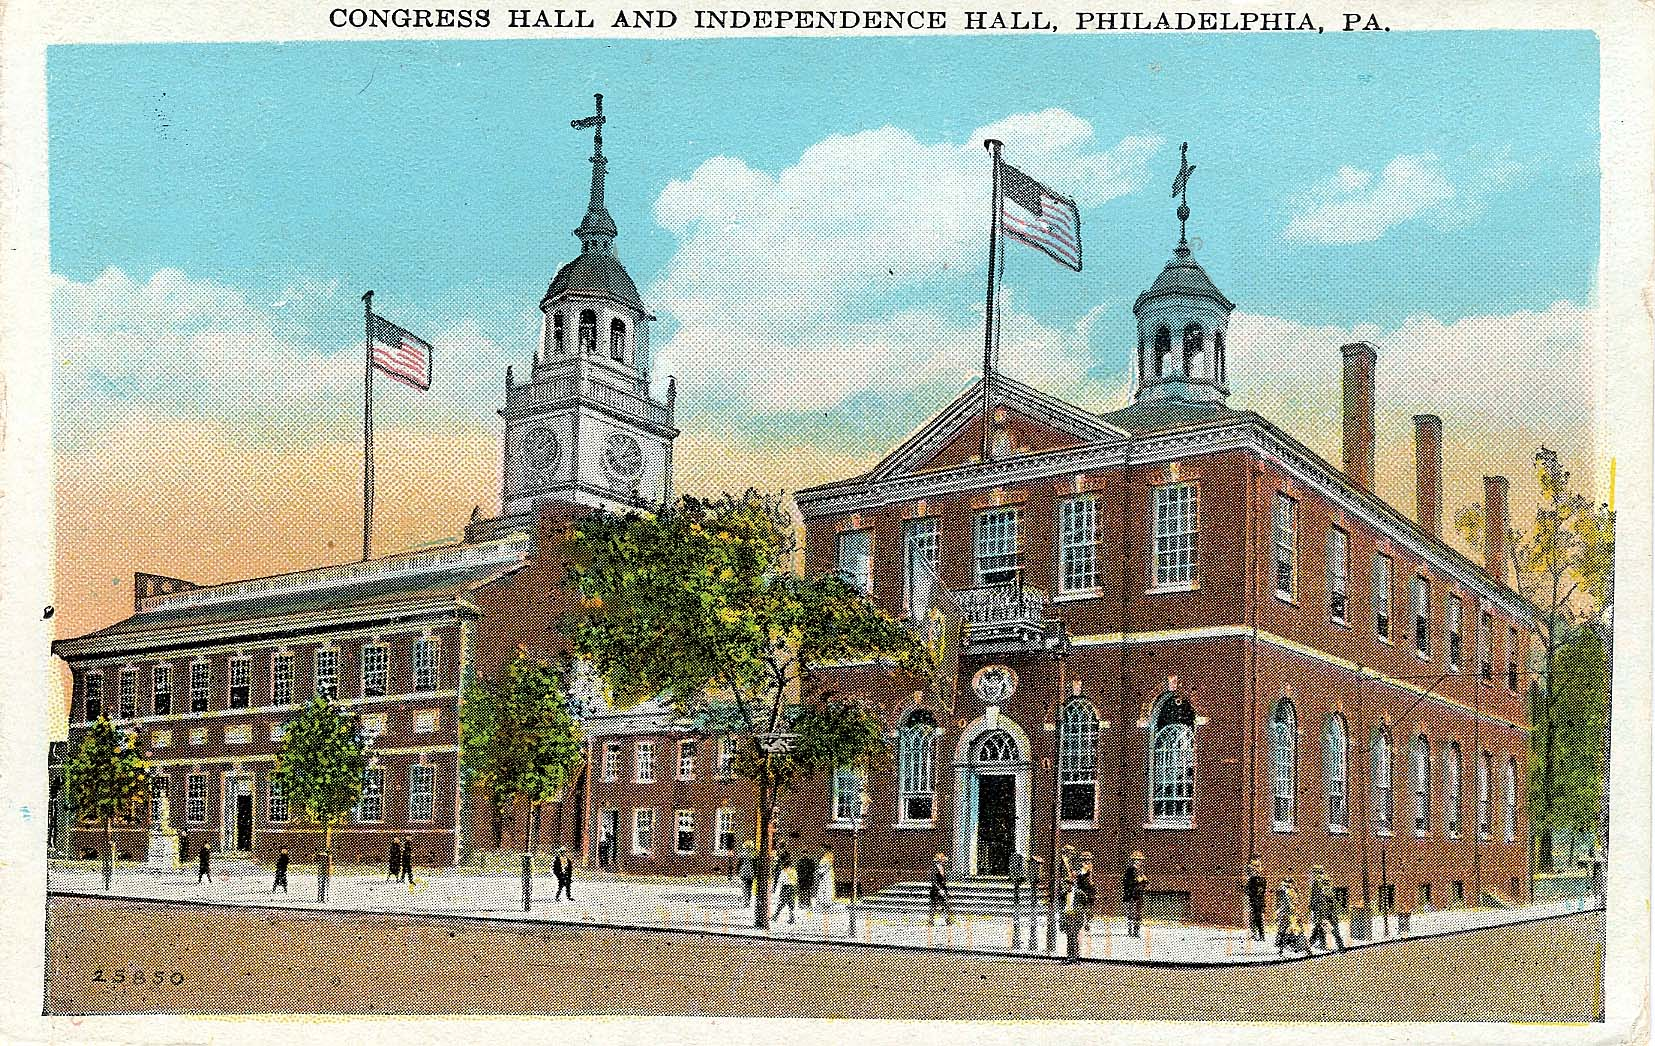 Independence Hall (left) and Congress Hall (right) in Philadelphia, Pennsylvania.